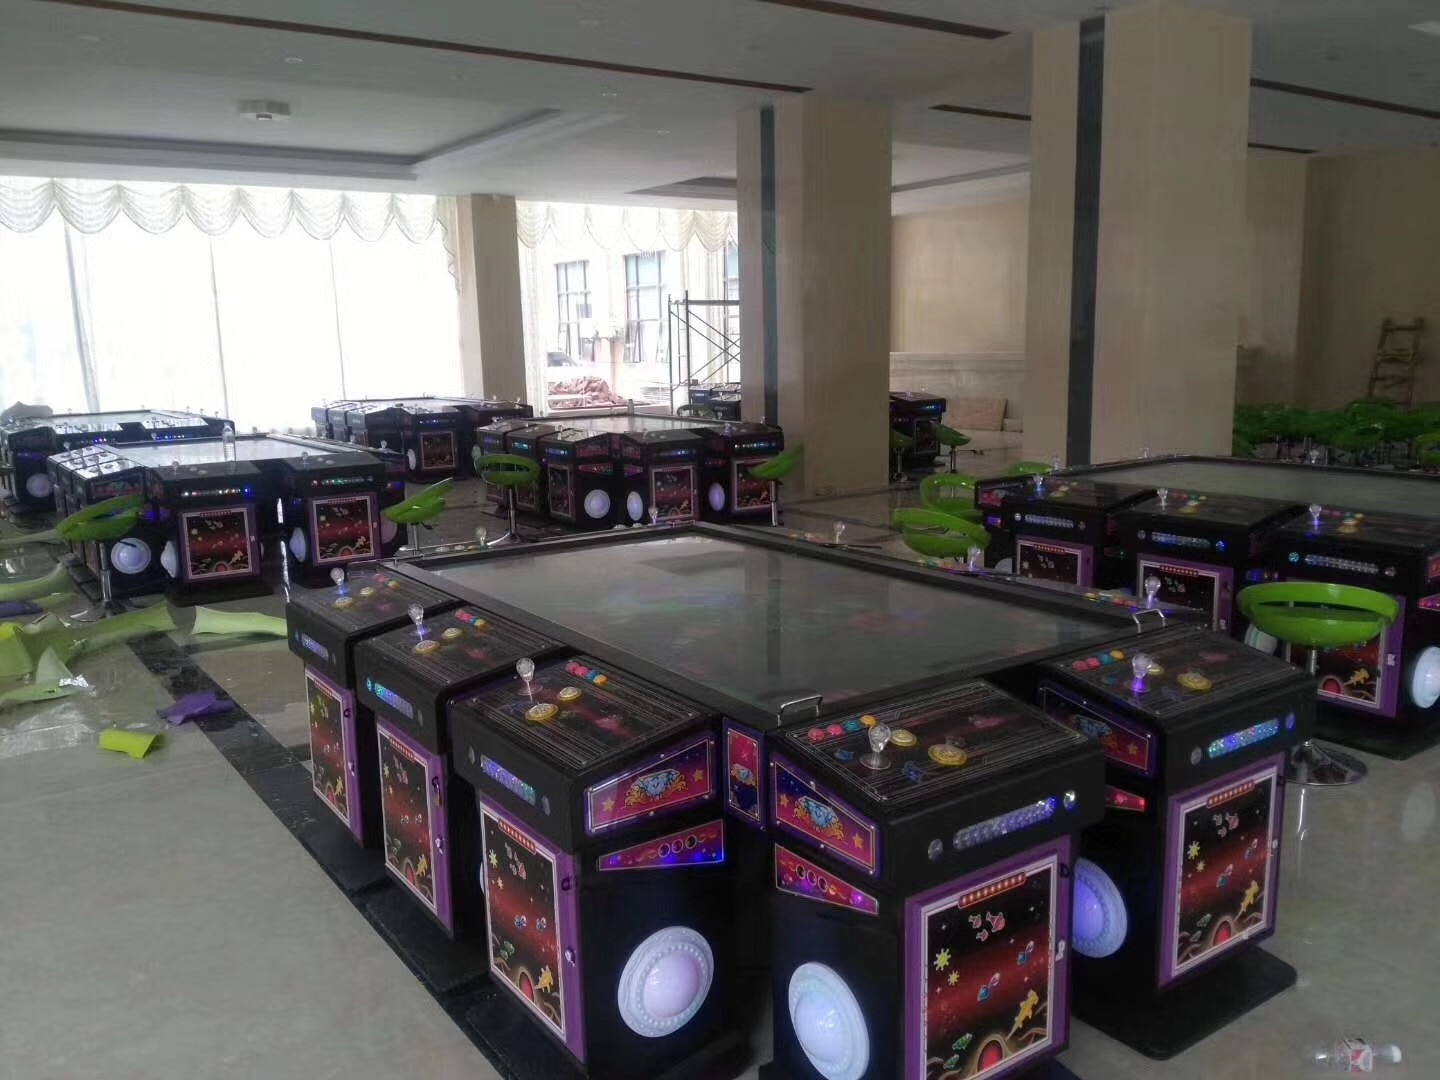 Fish Game Table Accessories ICT Advanced water resistant design Secure Removable Cashbox with plastic knob LX7 Bill AcceptorFish Game Table Accessories ICT Advanced water resistant design Secure Removable Cashbox with plastic knob LX7 Bill Acceptorfish game table accessories